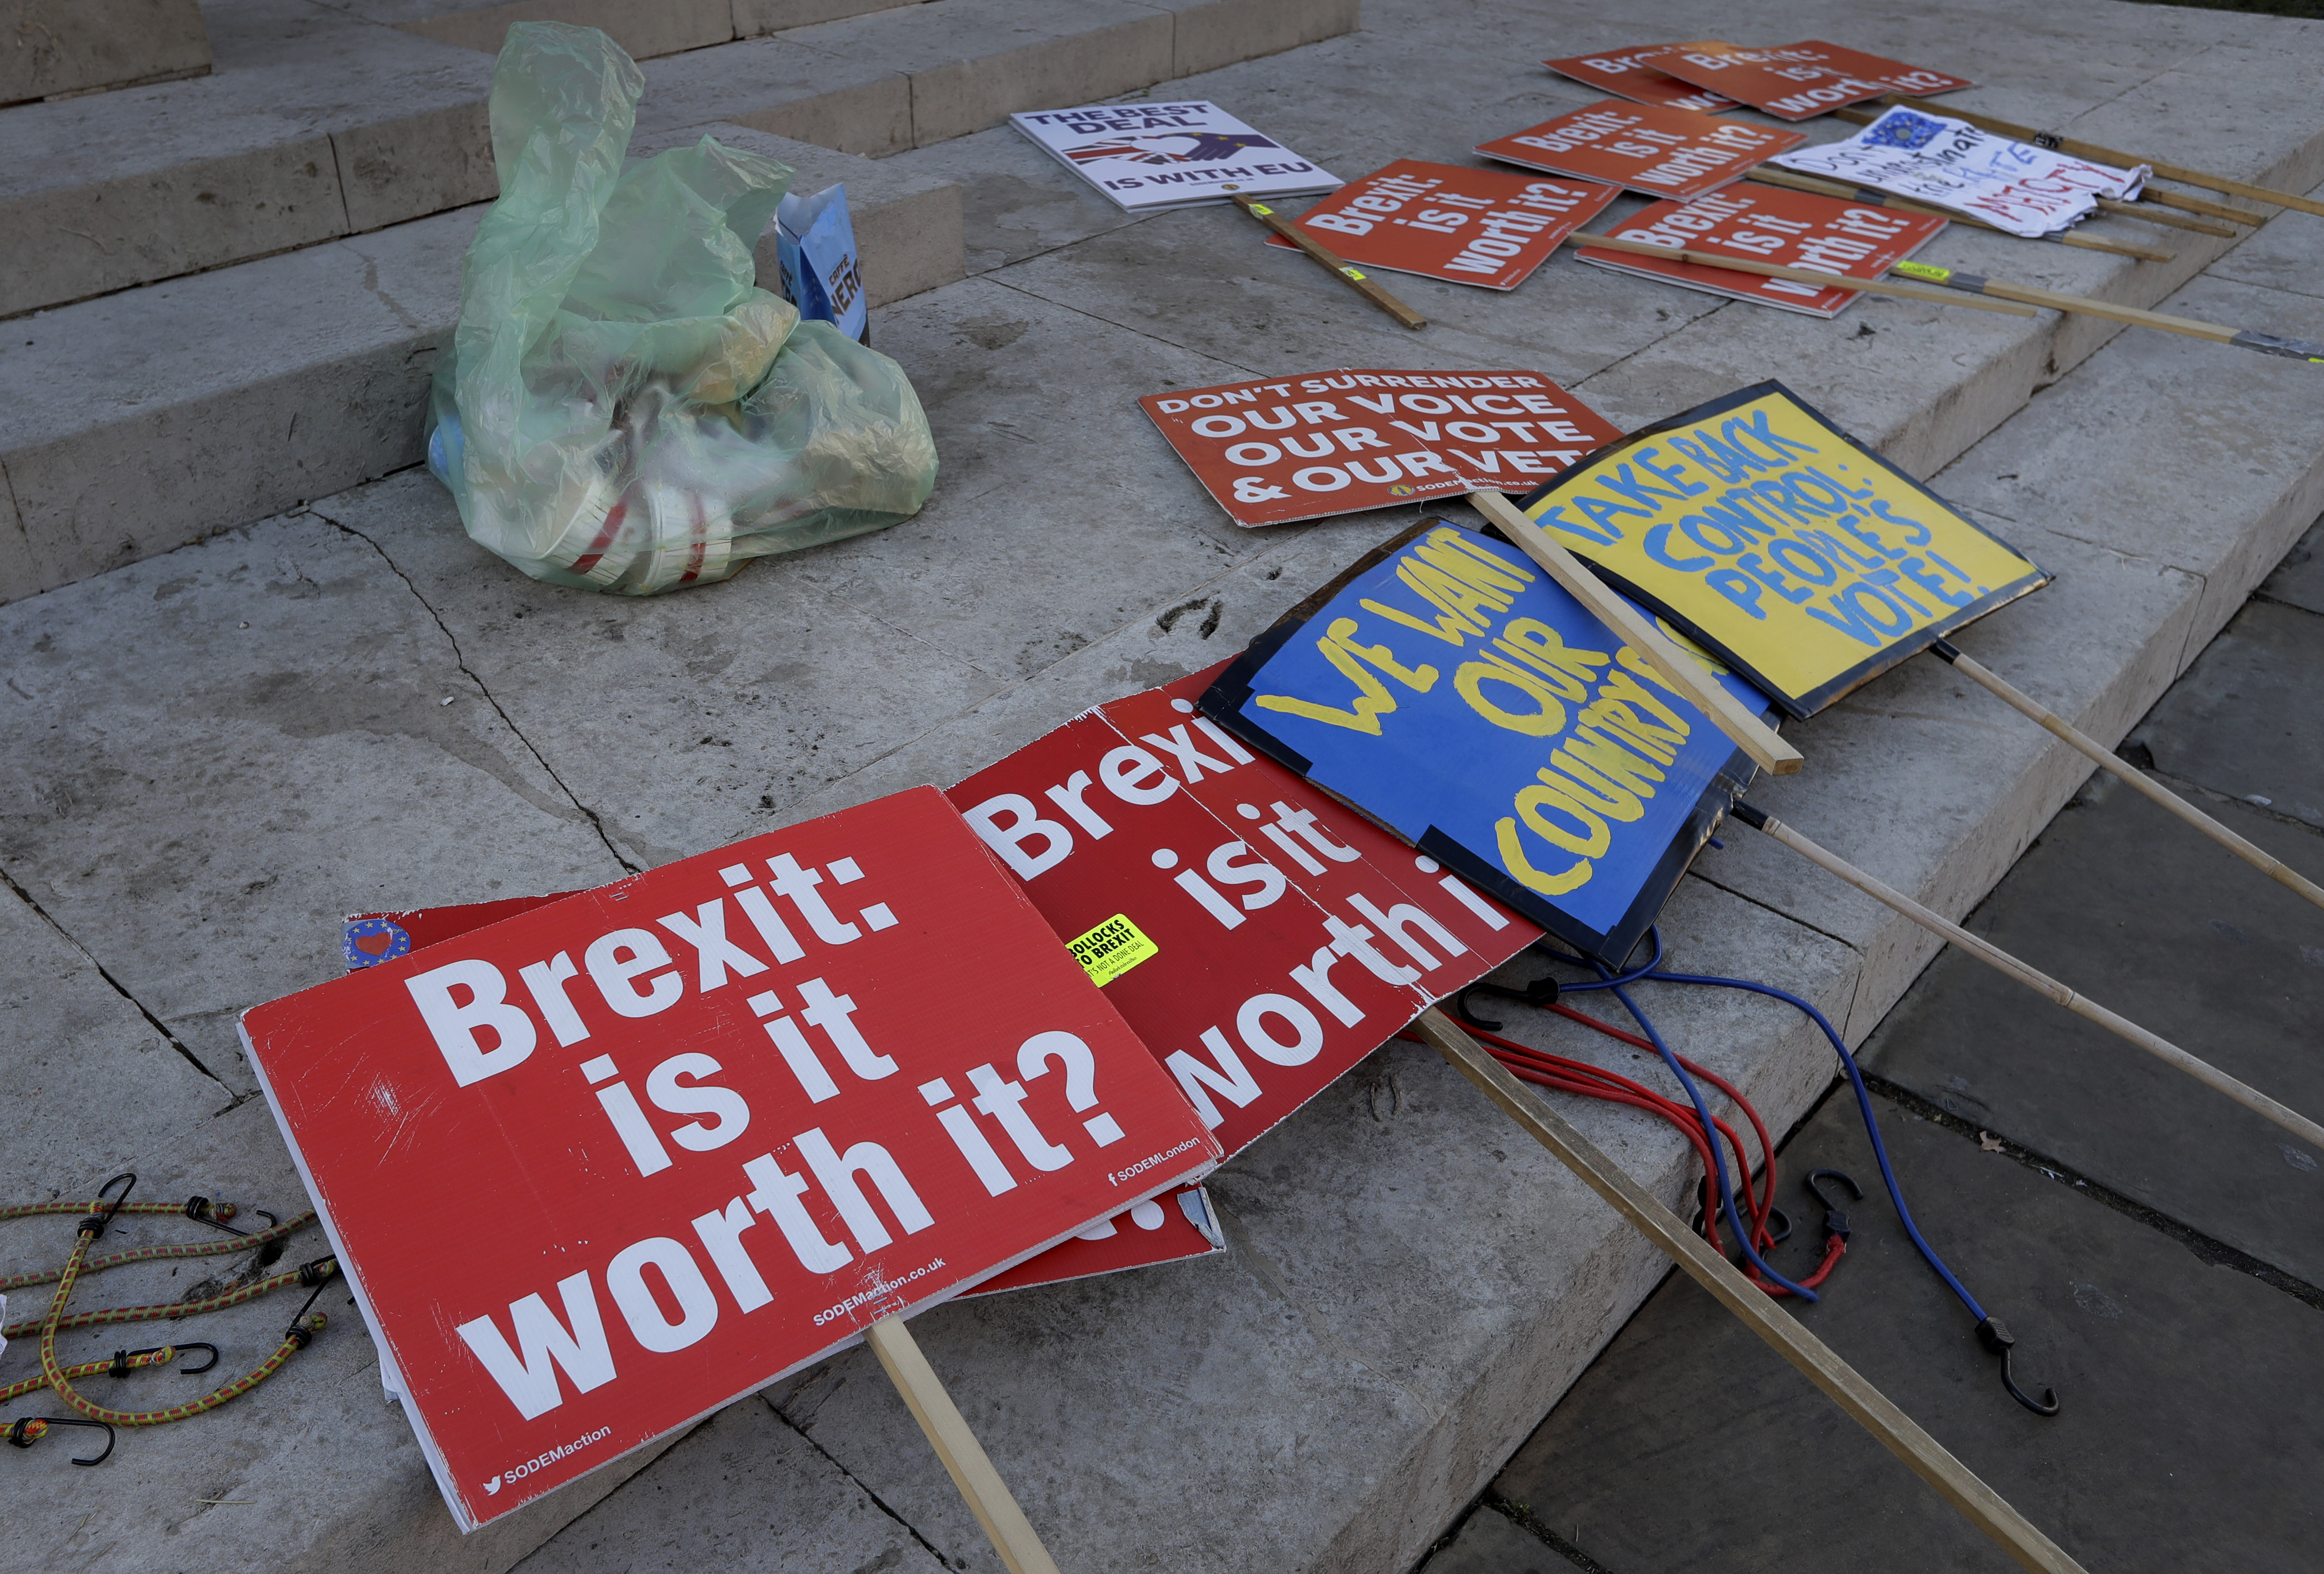 Brexit banners lie on the ground near parliament in London, Britain, Jan. 17, 2019.